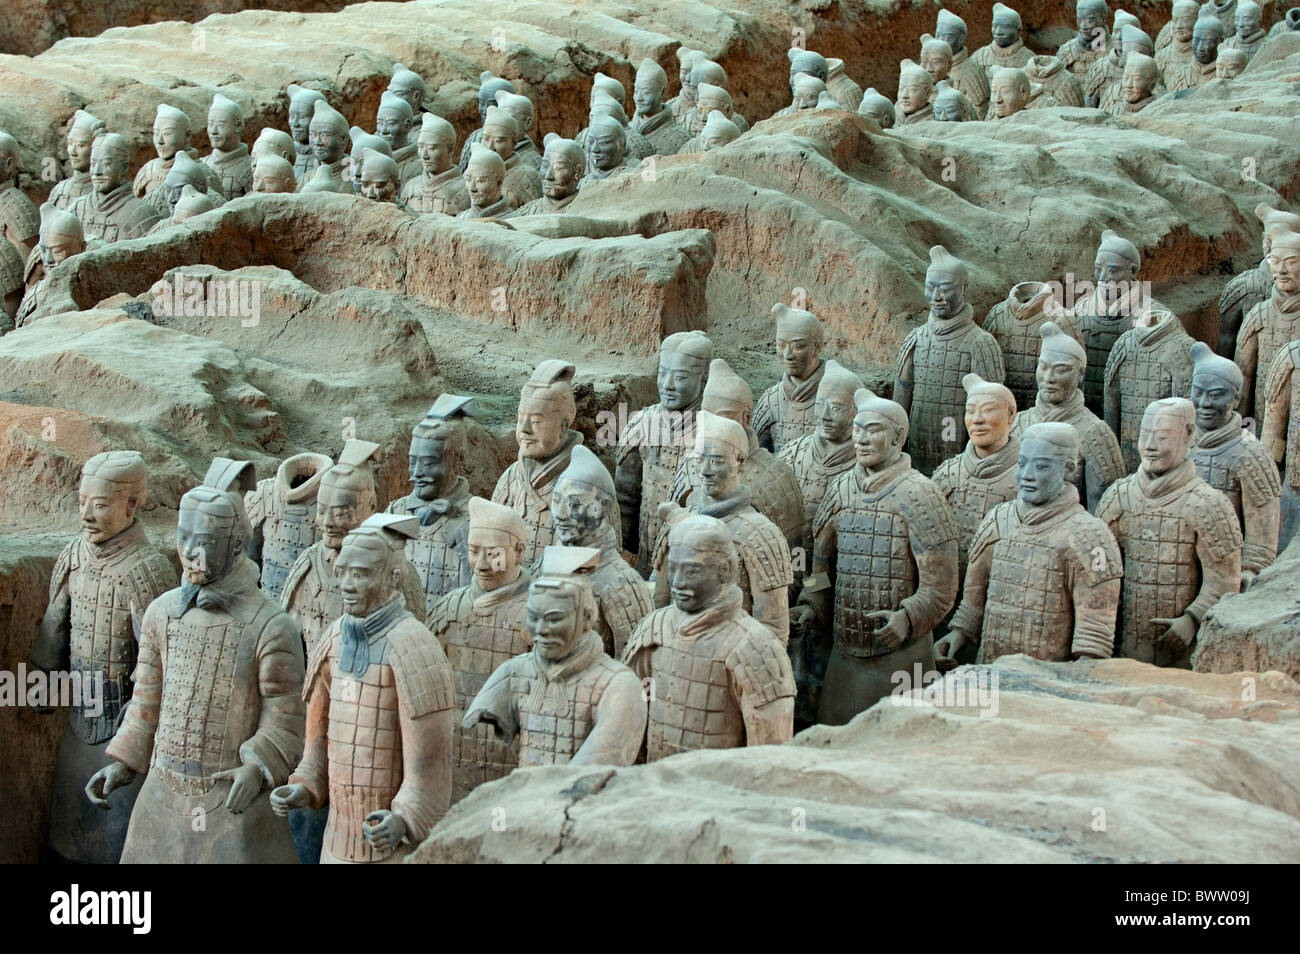 Terracotta Army, Xi'an, China - Stock Image